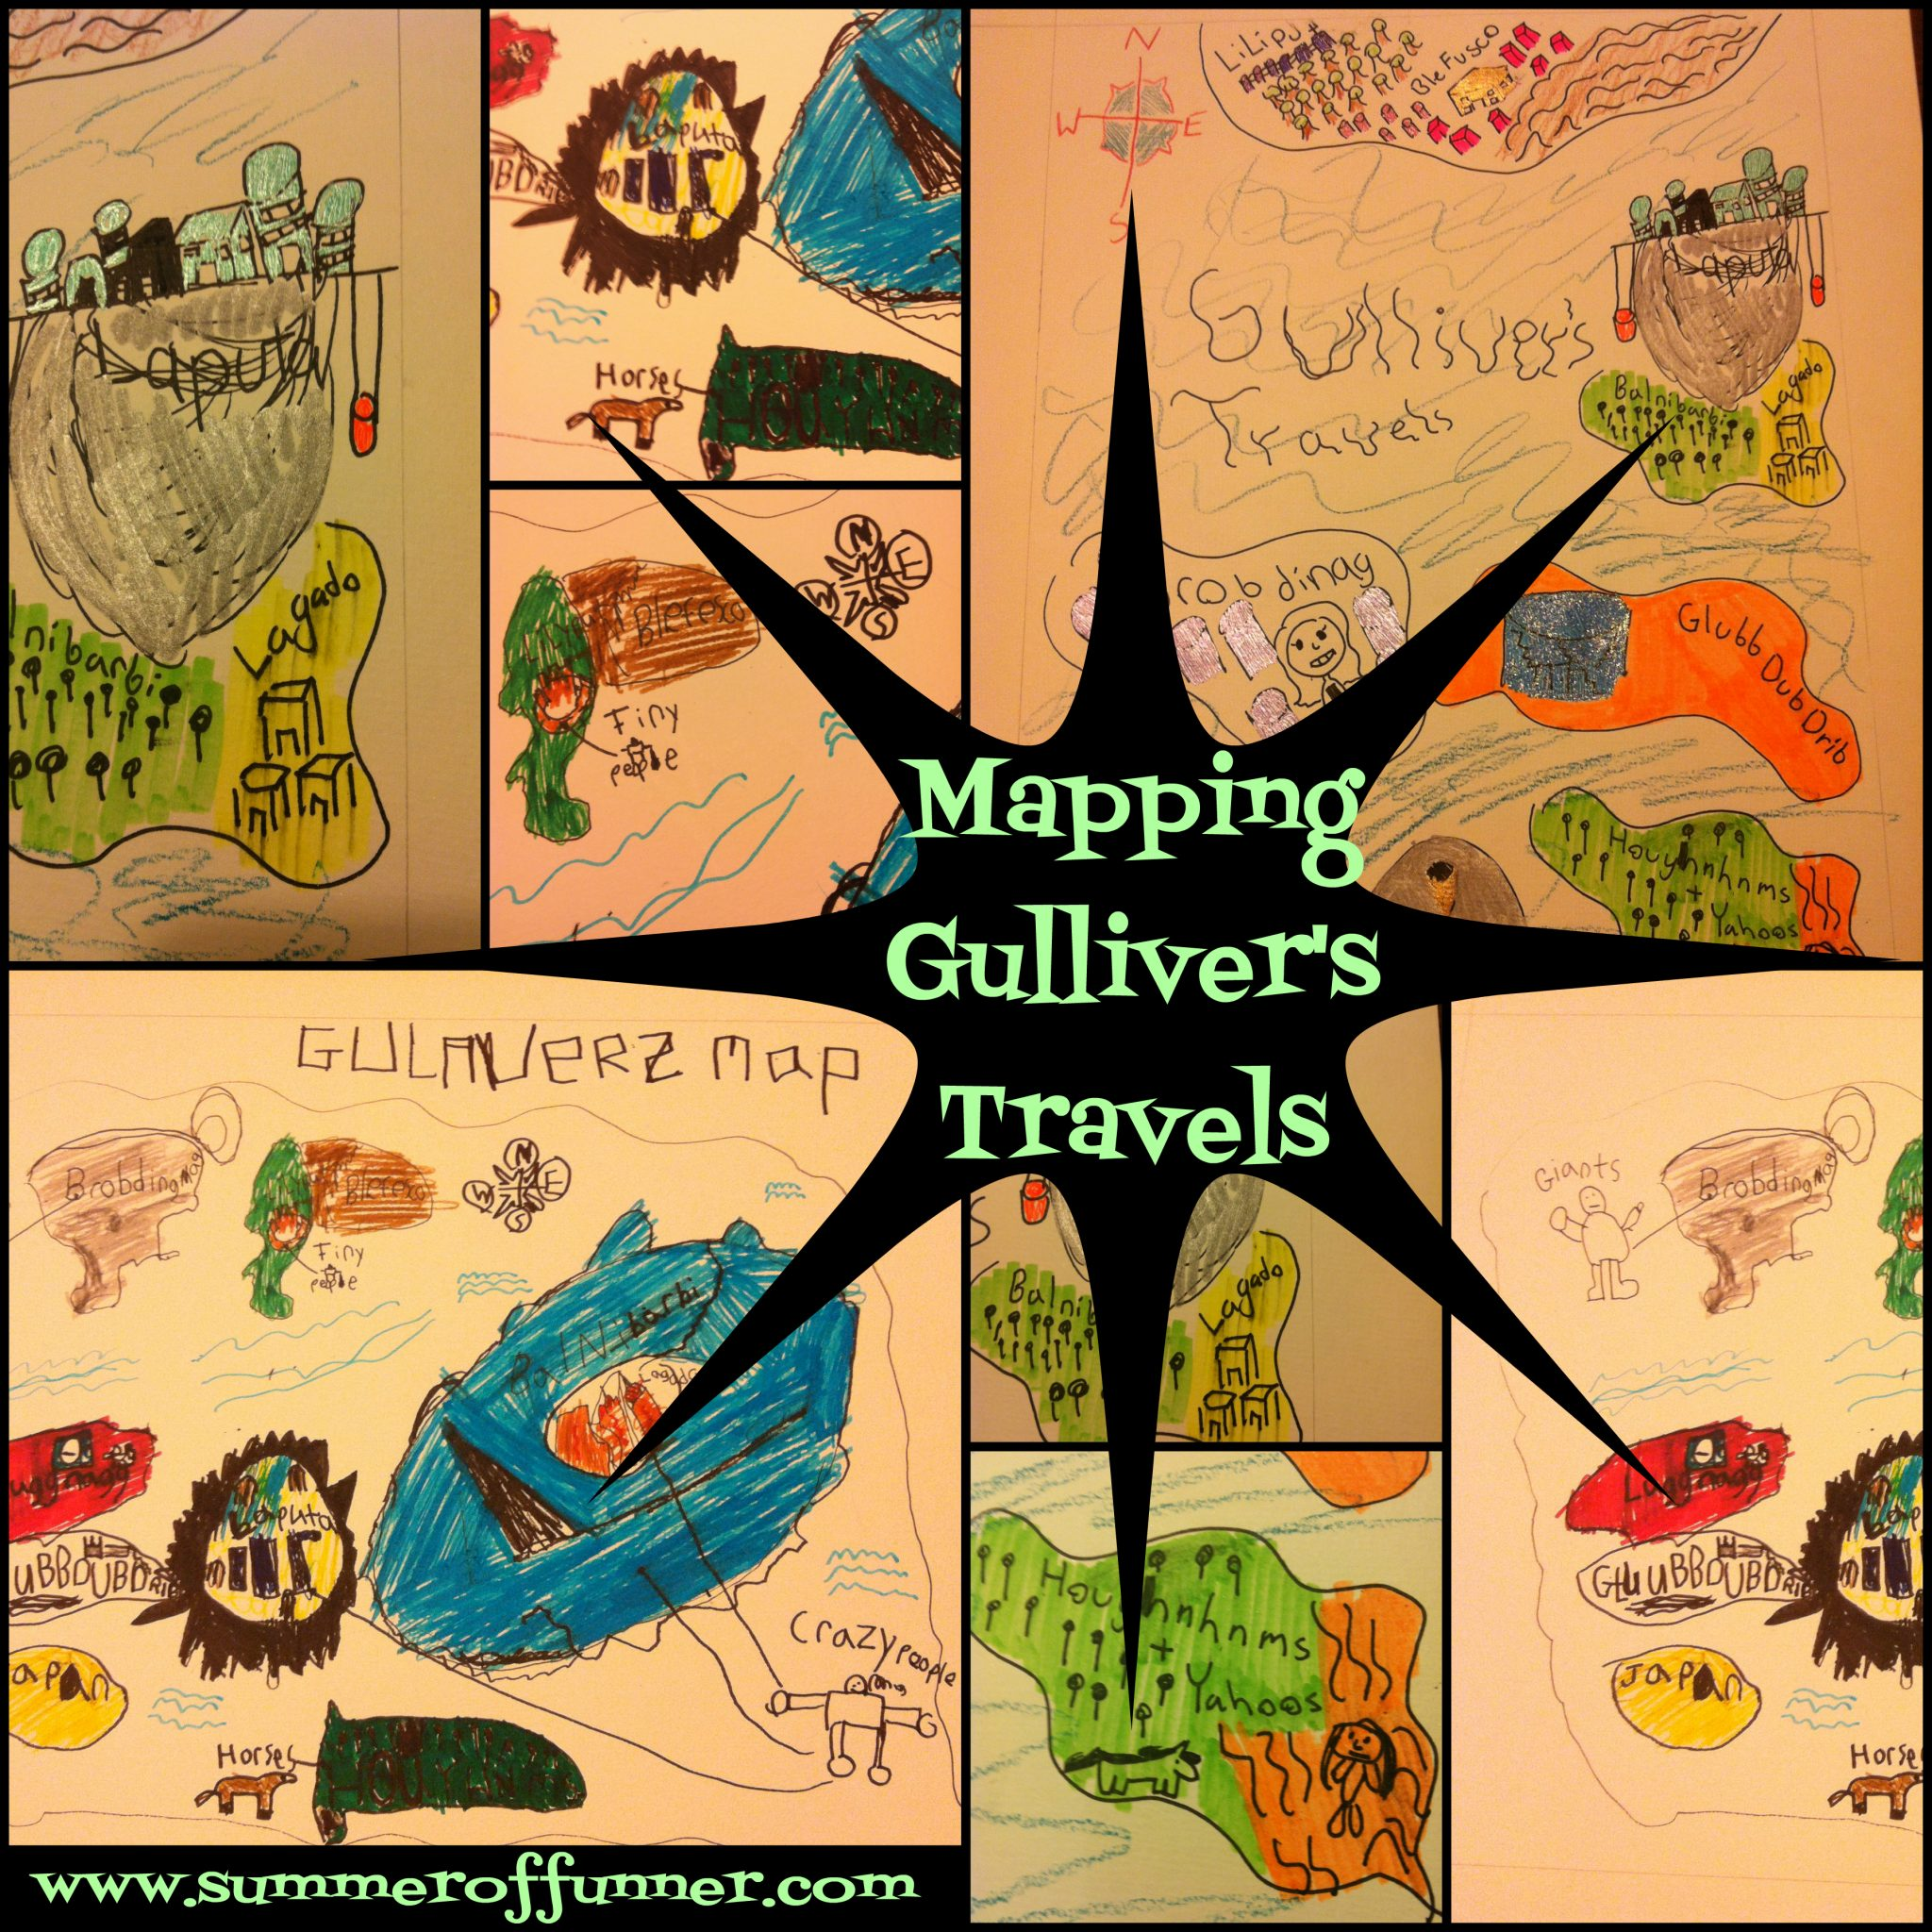 analysis of gulivers travels Gulliver washes ashore on lilliput and attempts to prevent war between that tiny kingdom and its equally gulliver's travels passed see full summary.